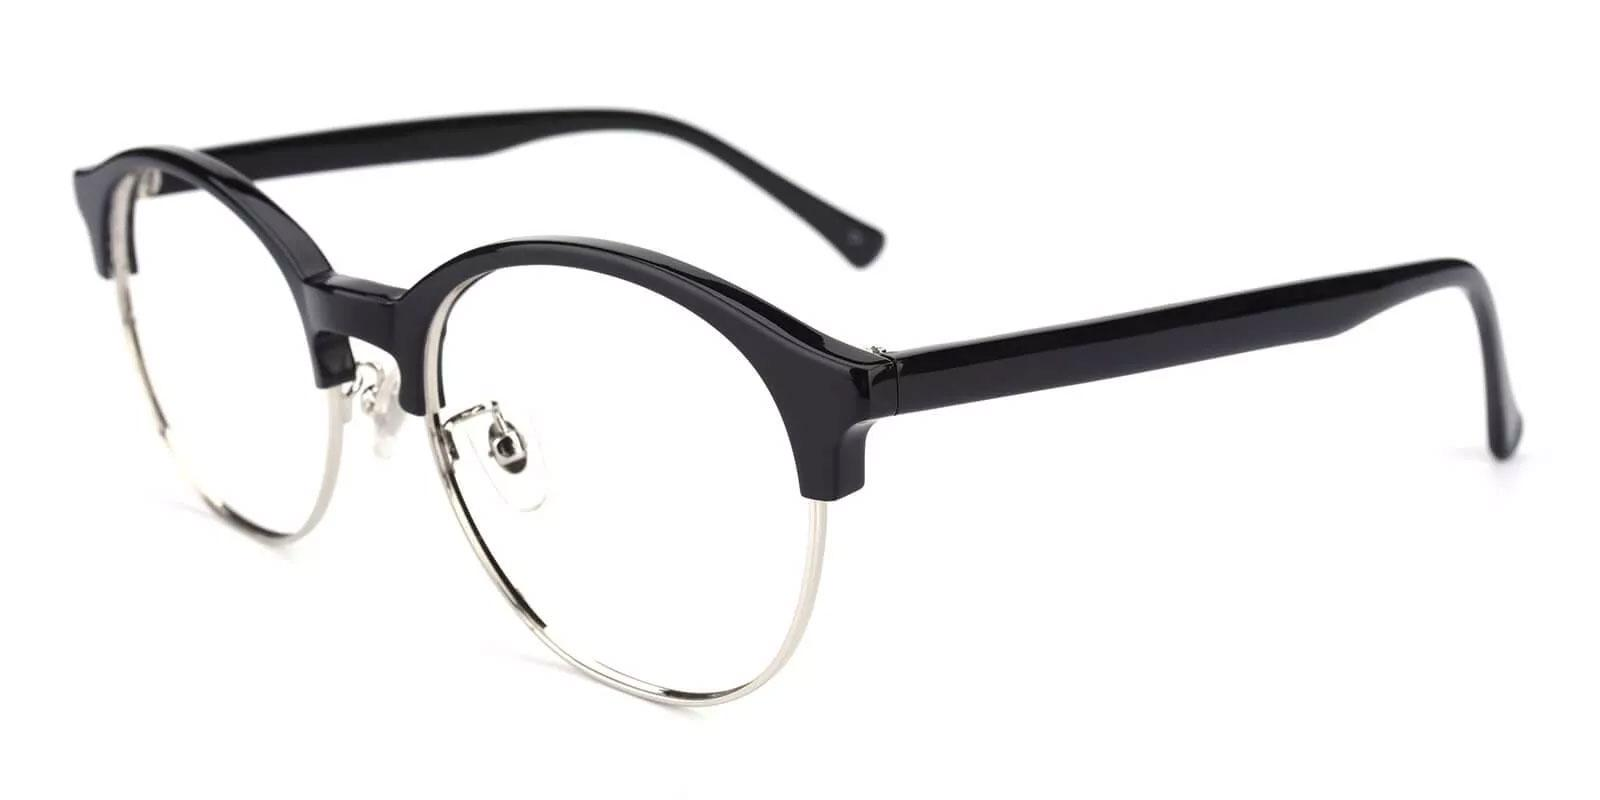 Pelsor Black Combination Eyeglasses , NosePads Frames from ABBE Glasses